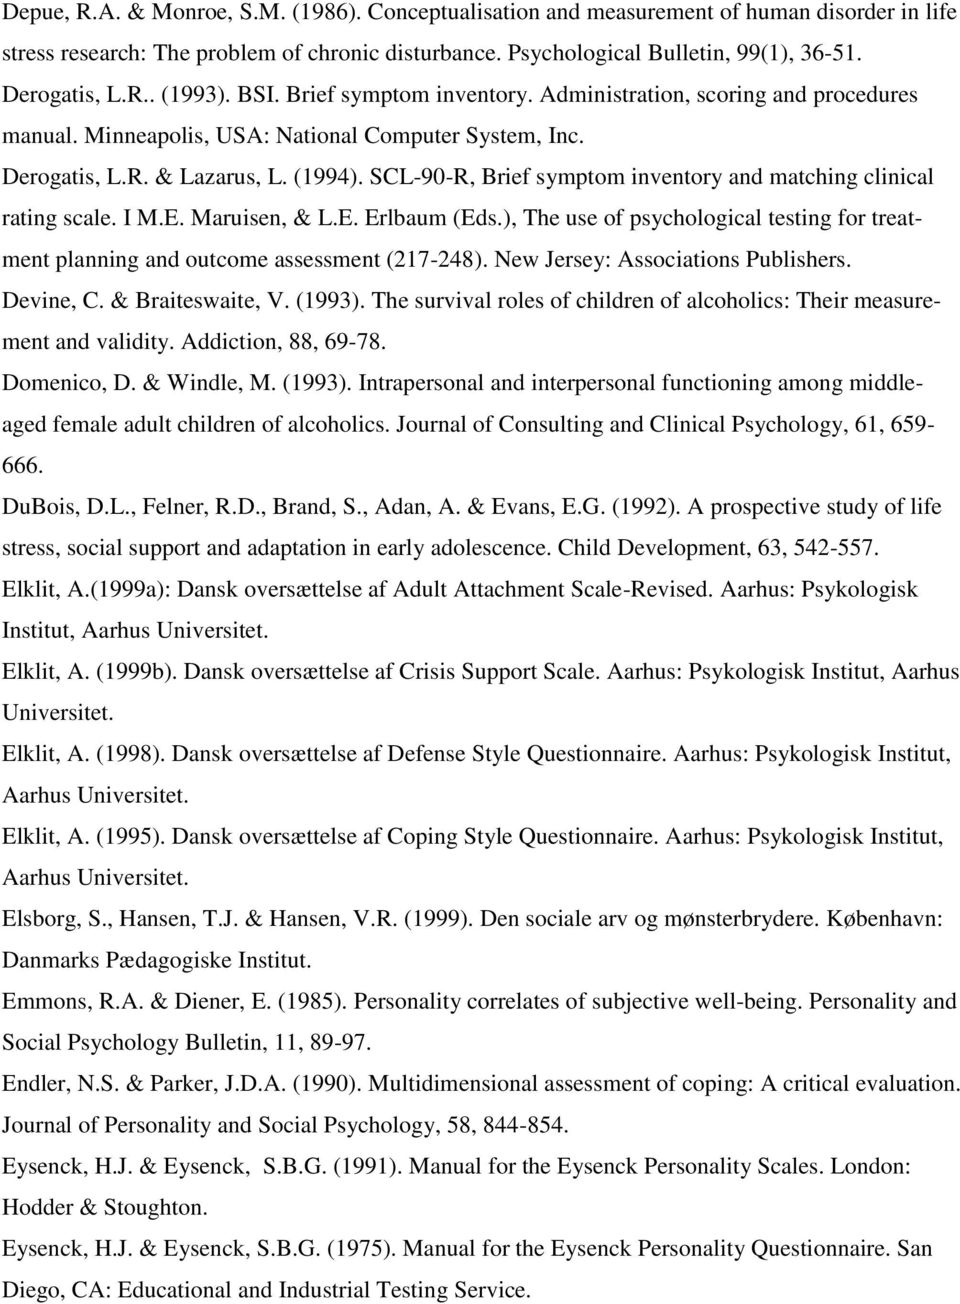 SCL-90-R, Brief symptom inventory and matching clinical rating scale. I M.E. Maruisen, & L.E. Erlbaum (Eds.), The use of psychological testing for treatment planning and outcome assessment (217-248).